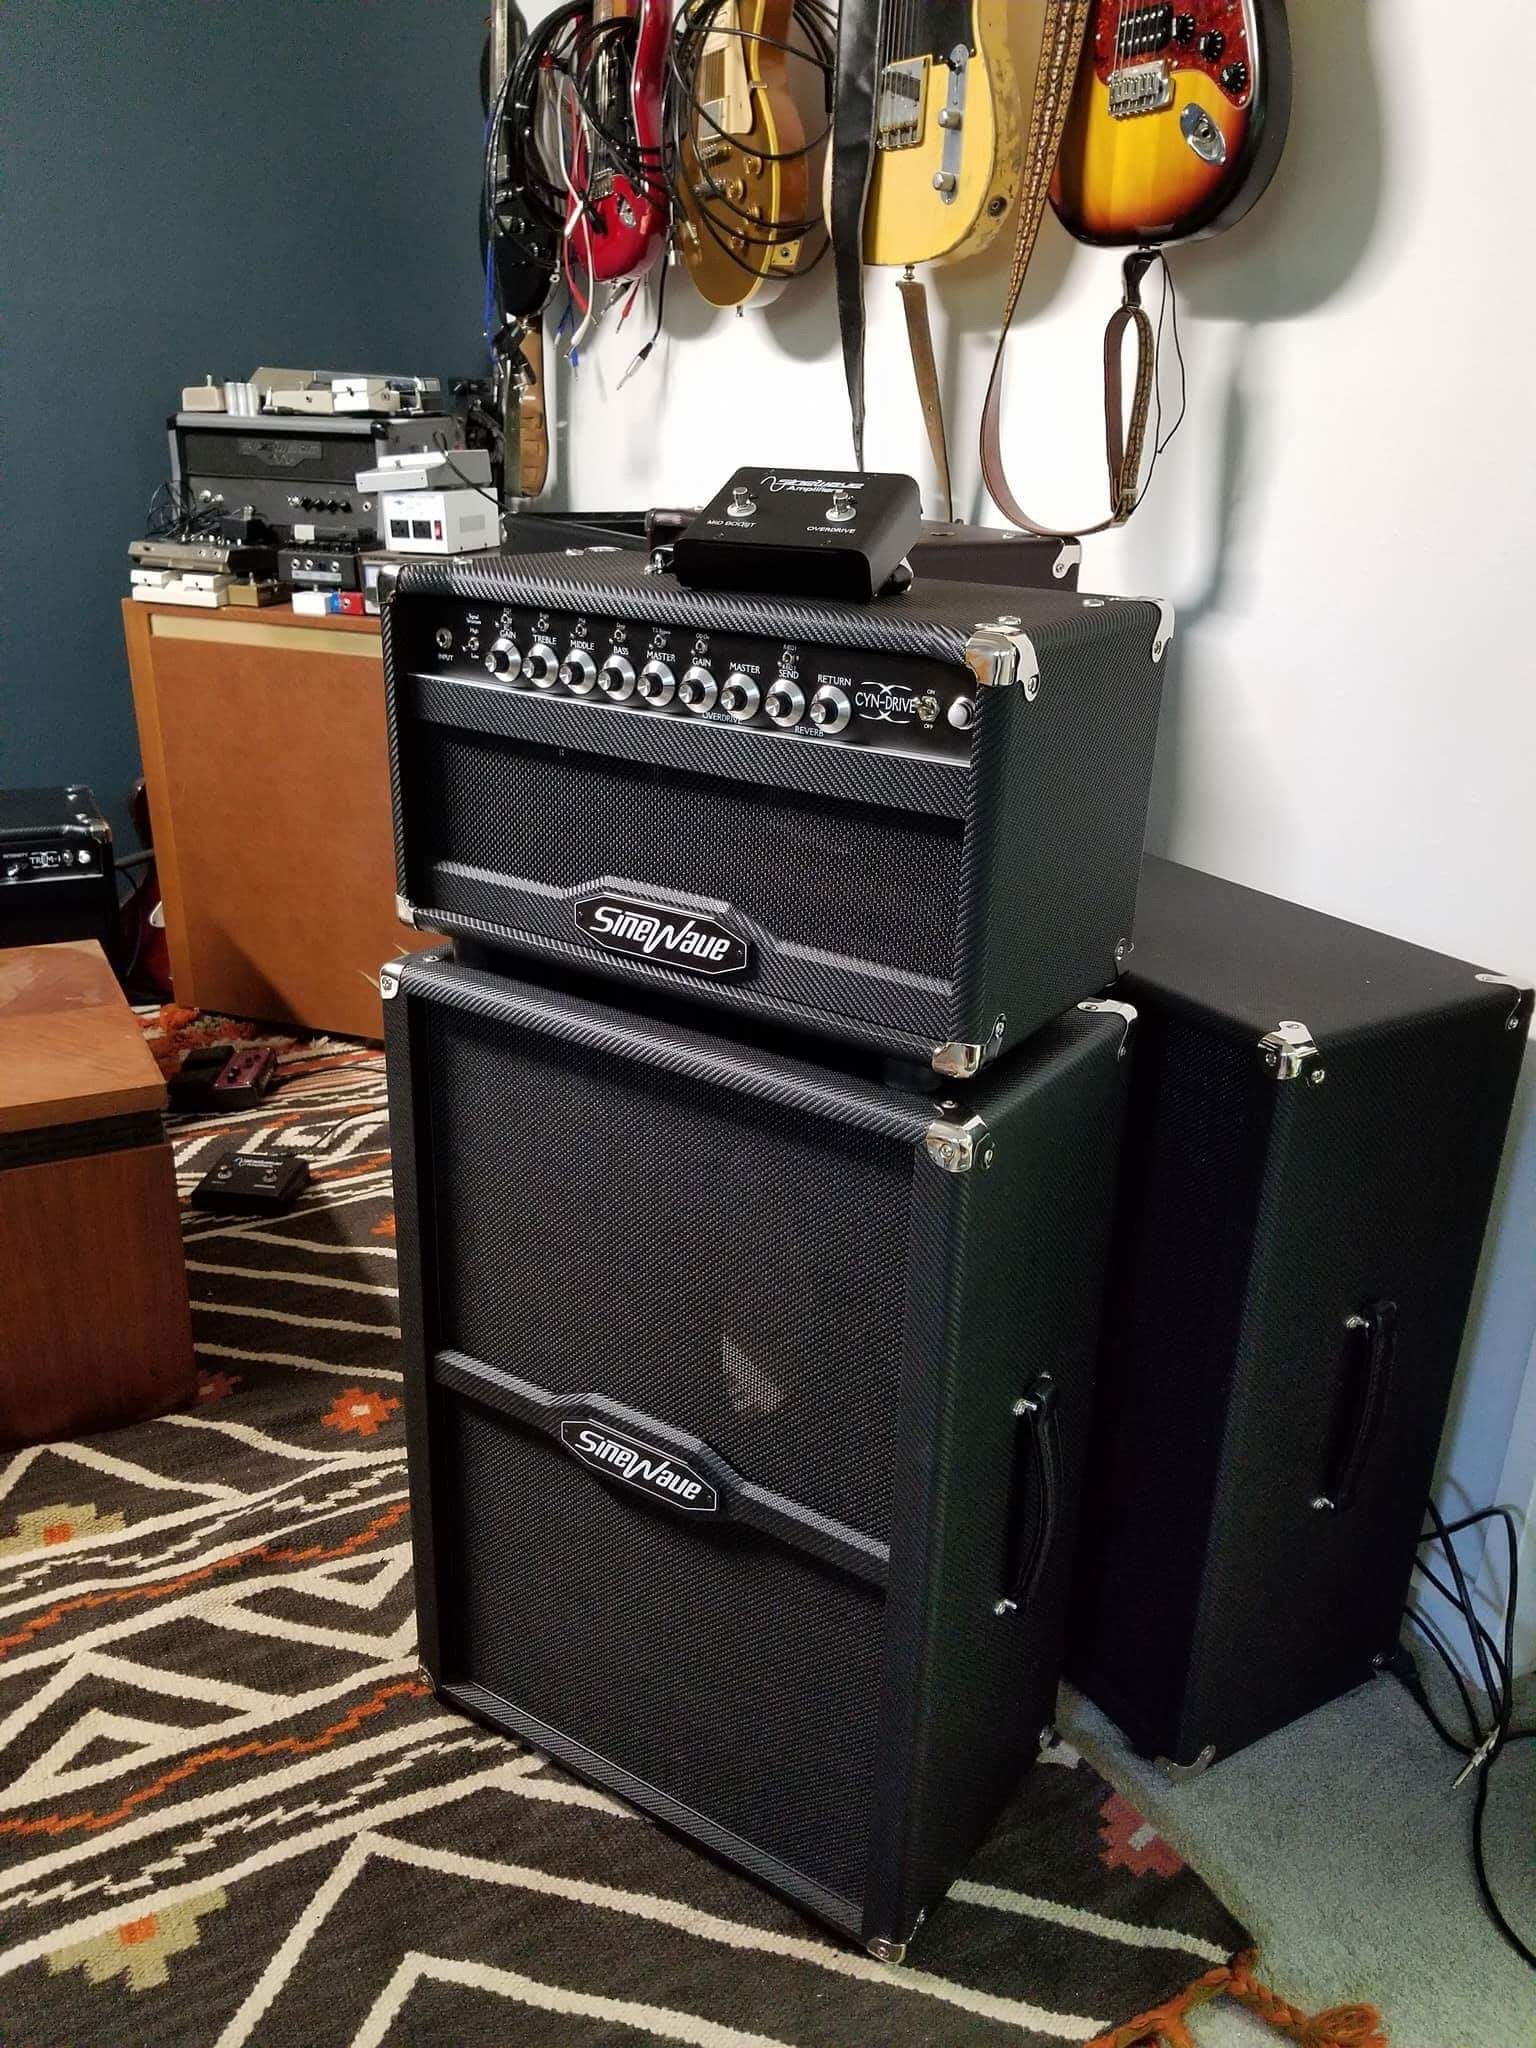 Nad sinewave cyn drive with matching 212 cabinet the gear page ive owned like 10 different two rocks and a few other d style amps in the past and what chad is building right now is the best ive played publicscrutiny Choice Image